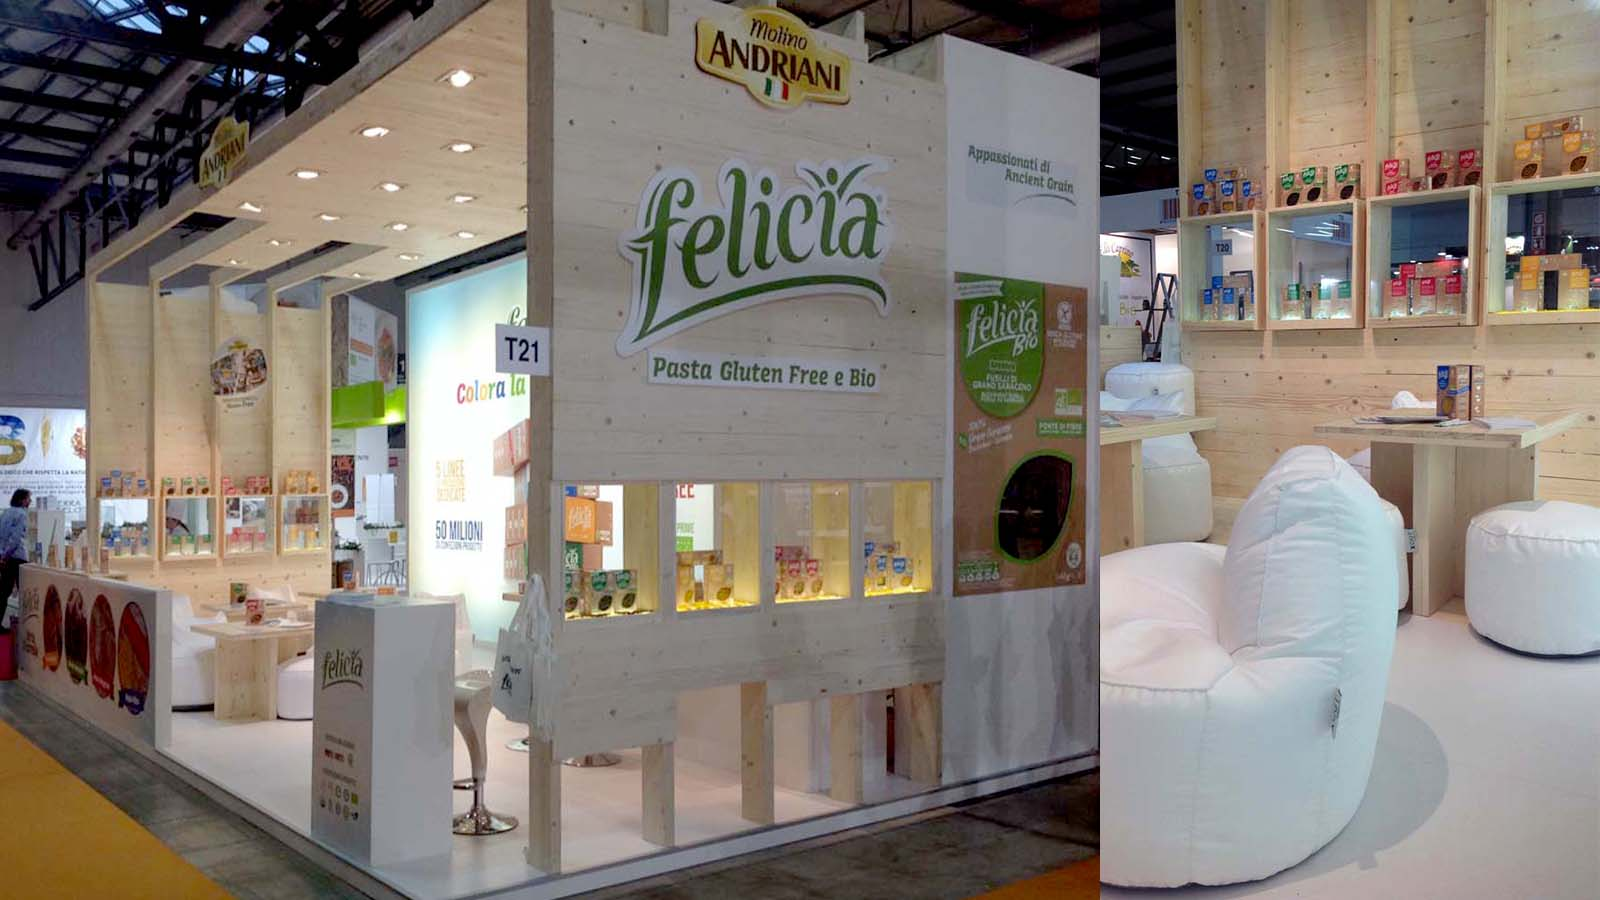 allestire-expo-event-tutto-food-2015-felicia.jpg